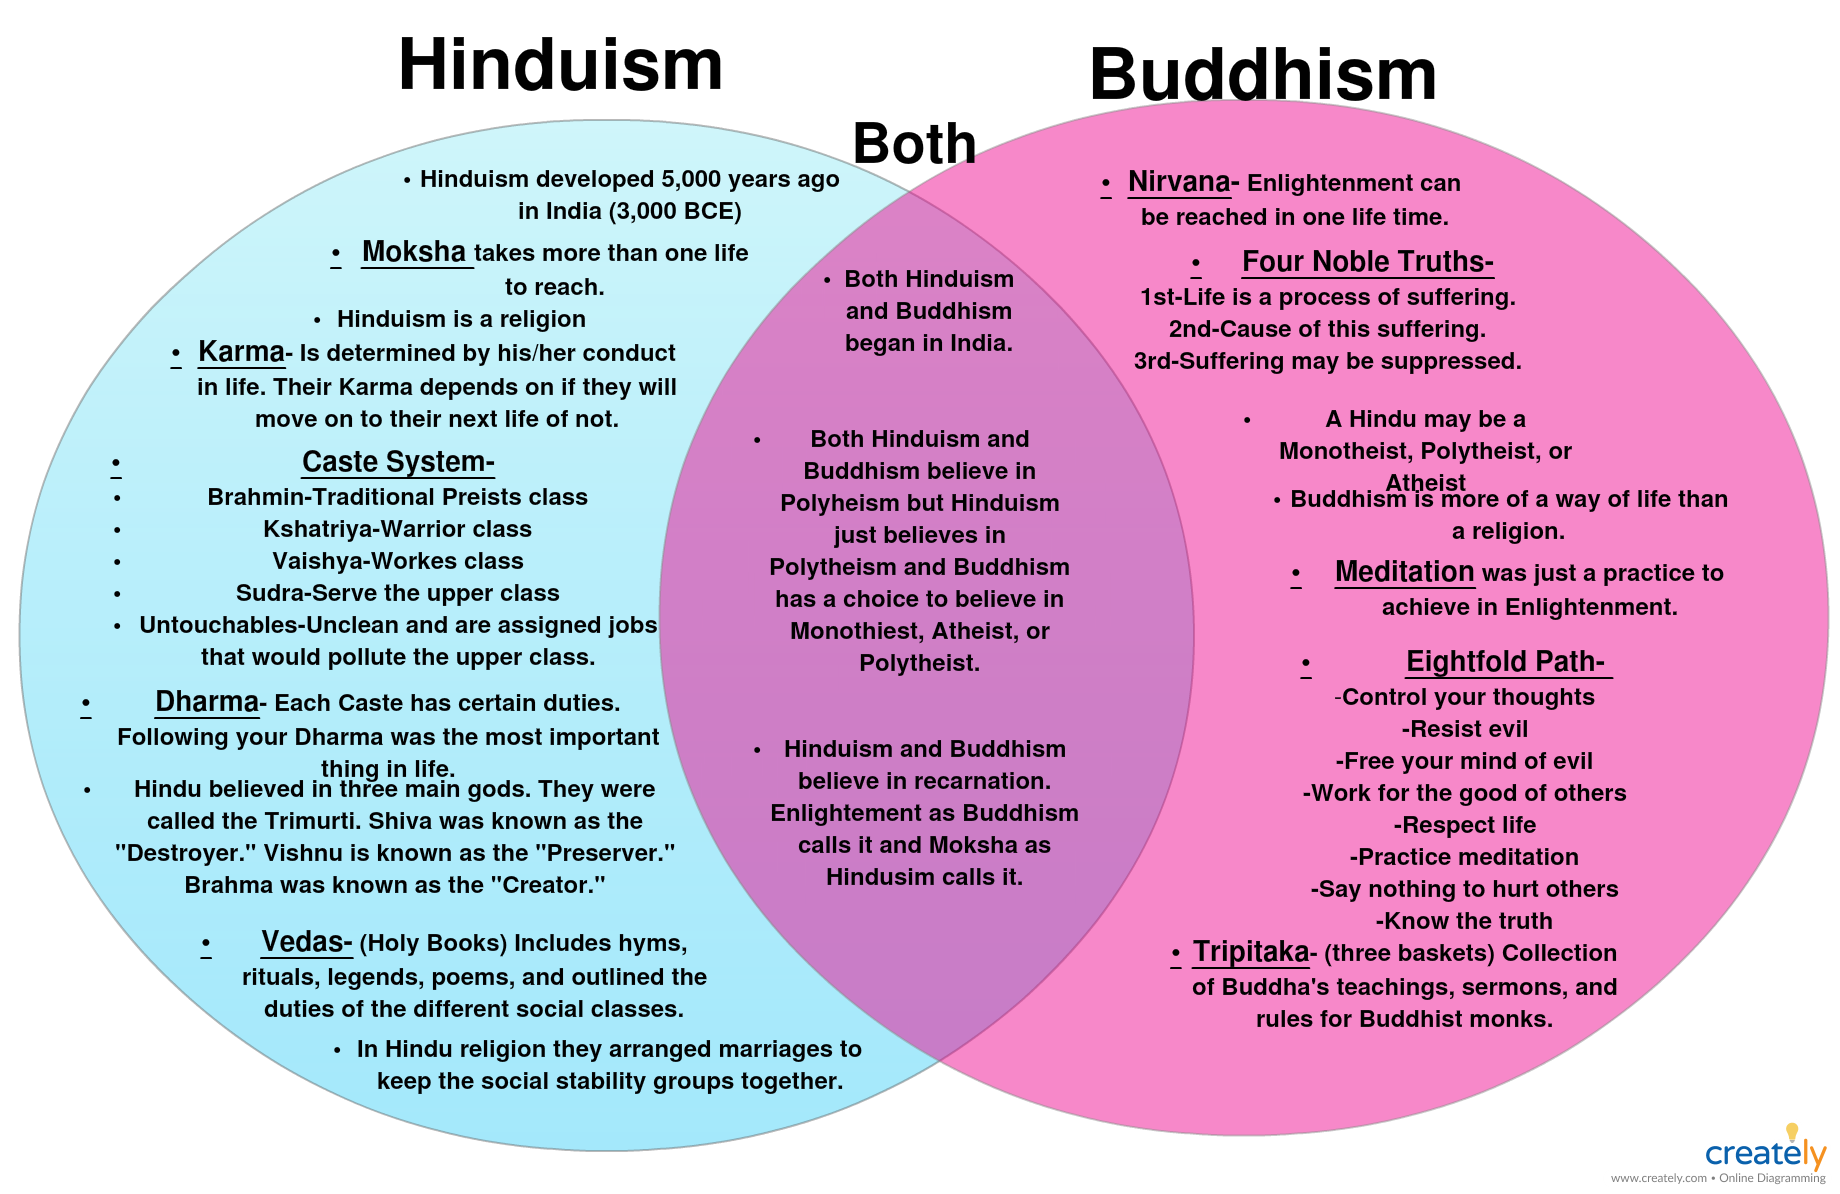 hight resolution of venn diagrams shows the similarities between hinduism and buddhism you can use this example for a class project or and educational purposes by simply